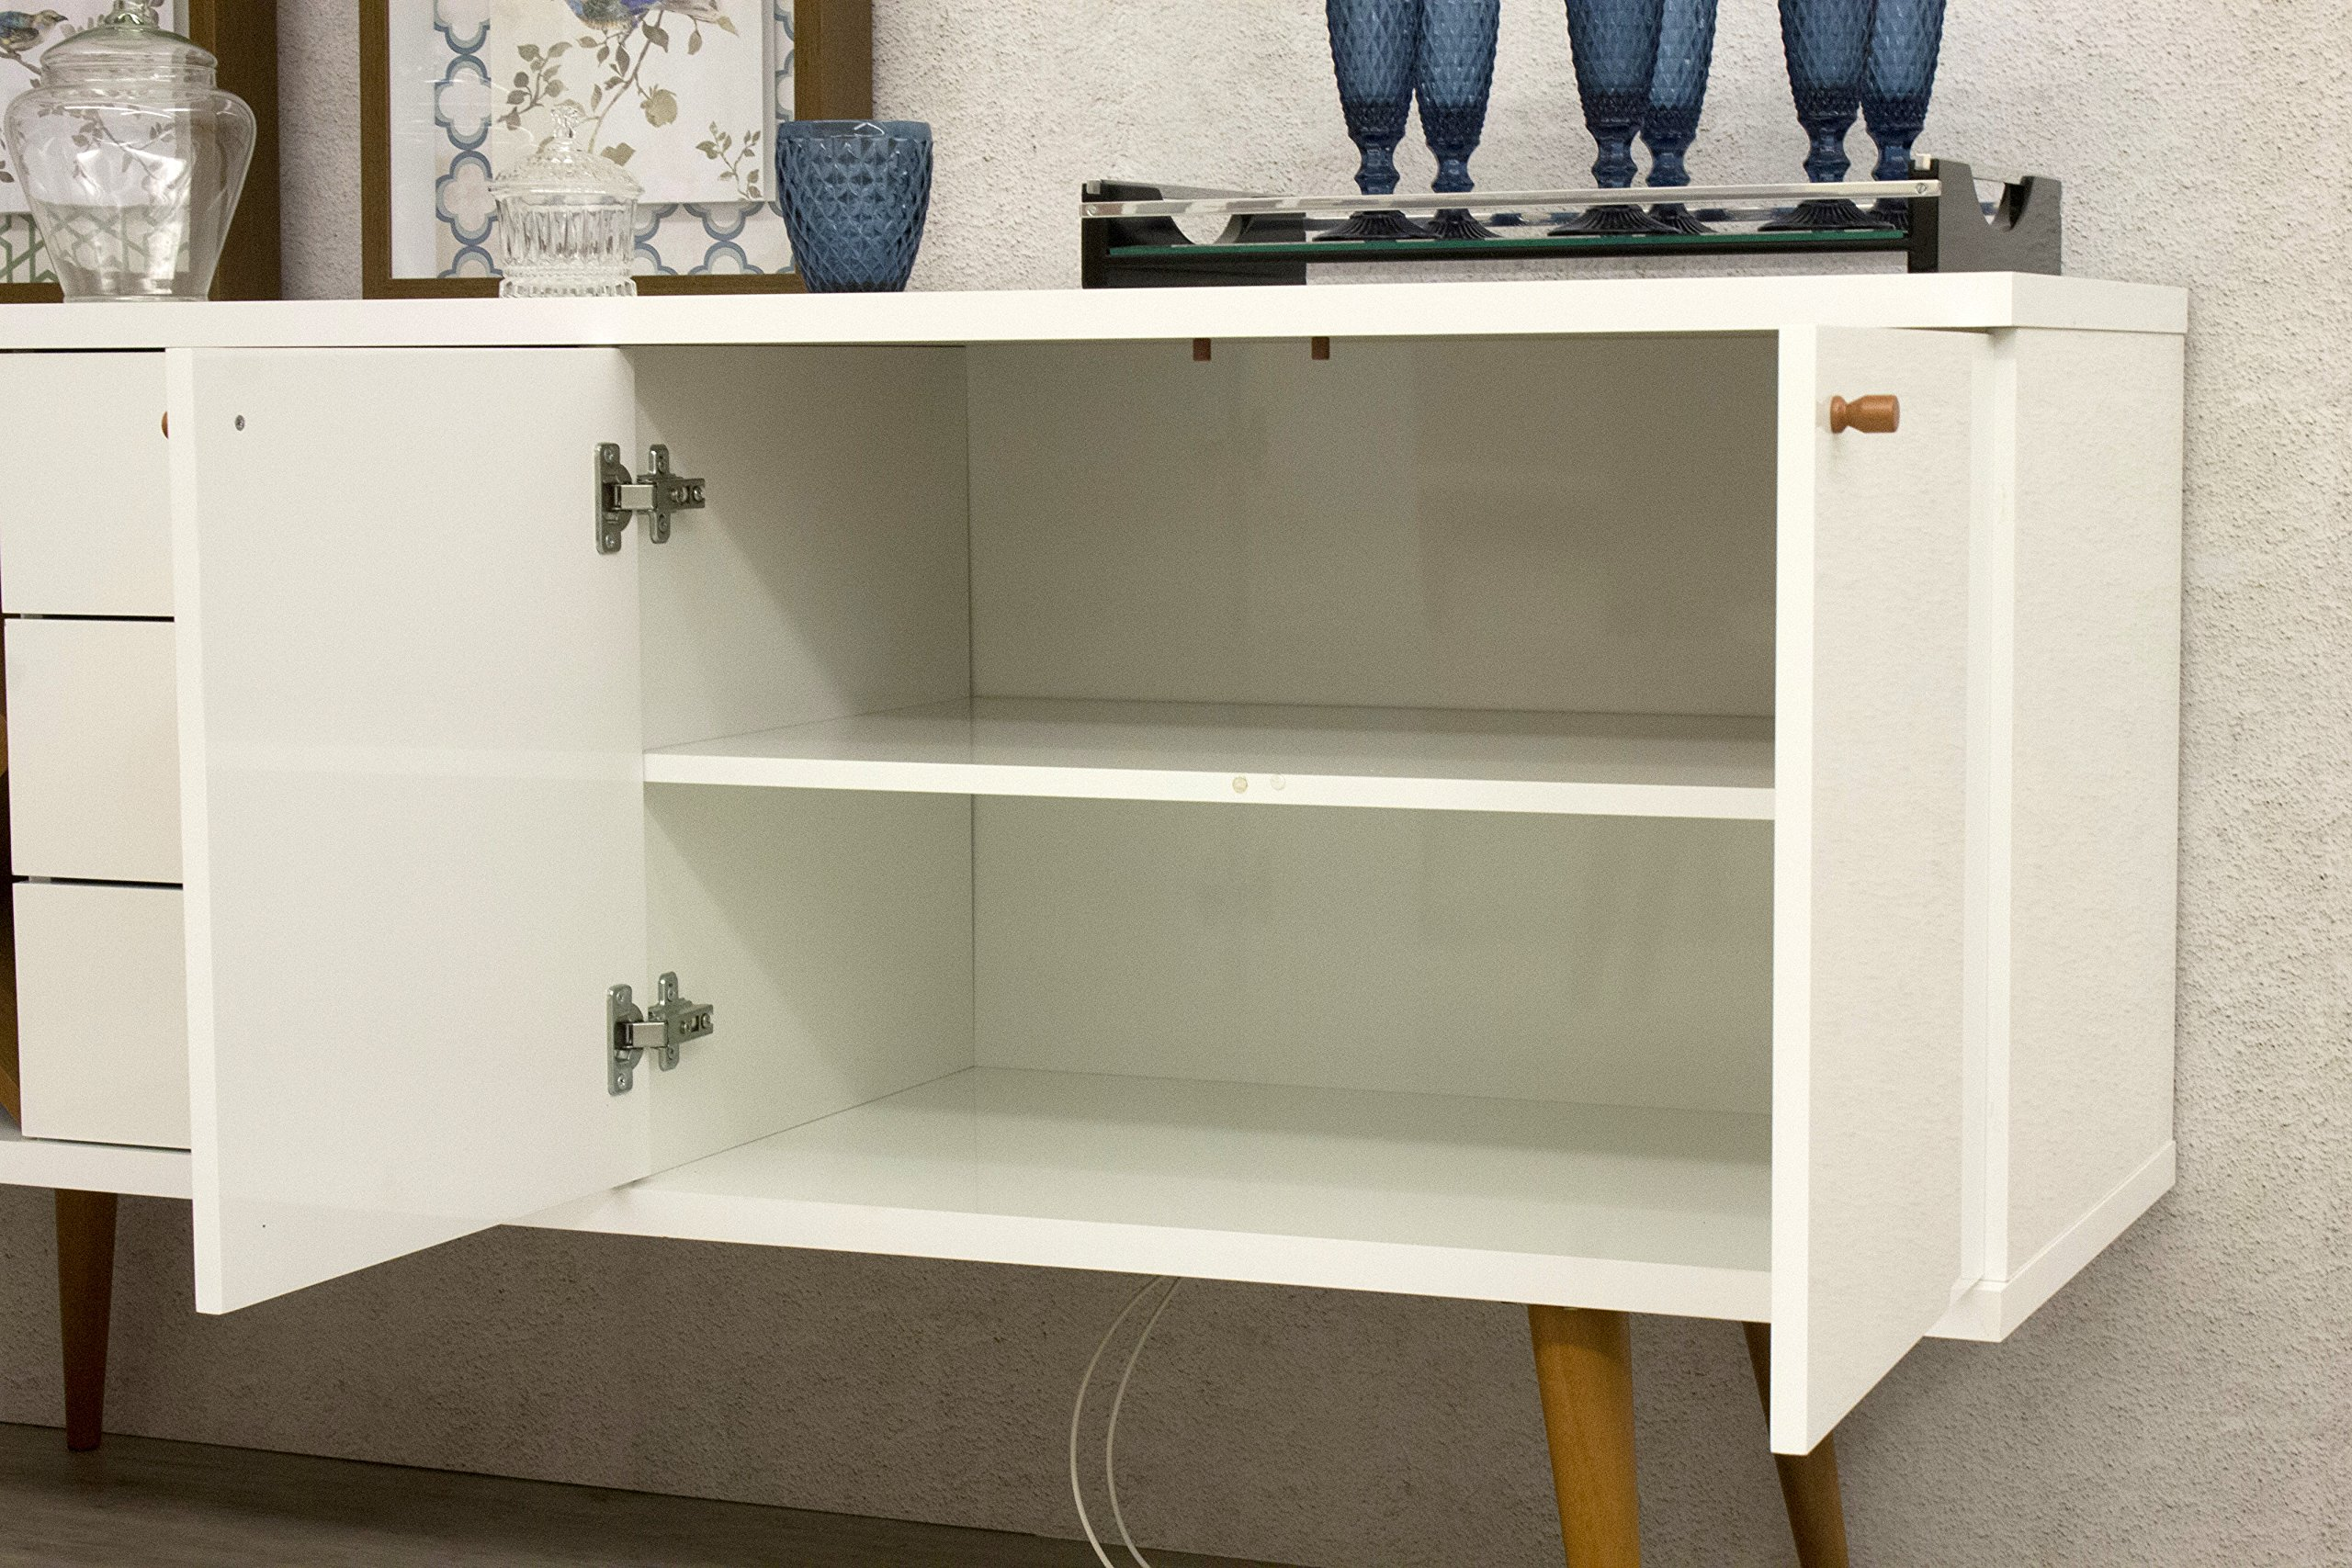 Manhattan Comfort Utopia Collection Mid Century Modern Sideboard Buffet Stand With 4 Bottle Wine Rack, Cabinet and 3 Drawers, Splayed Legs, White by Manhattan Comfort (Image #3)